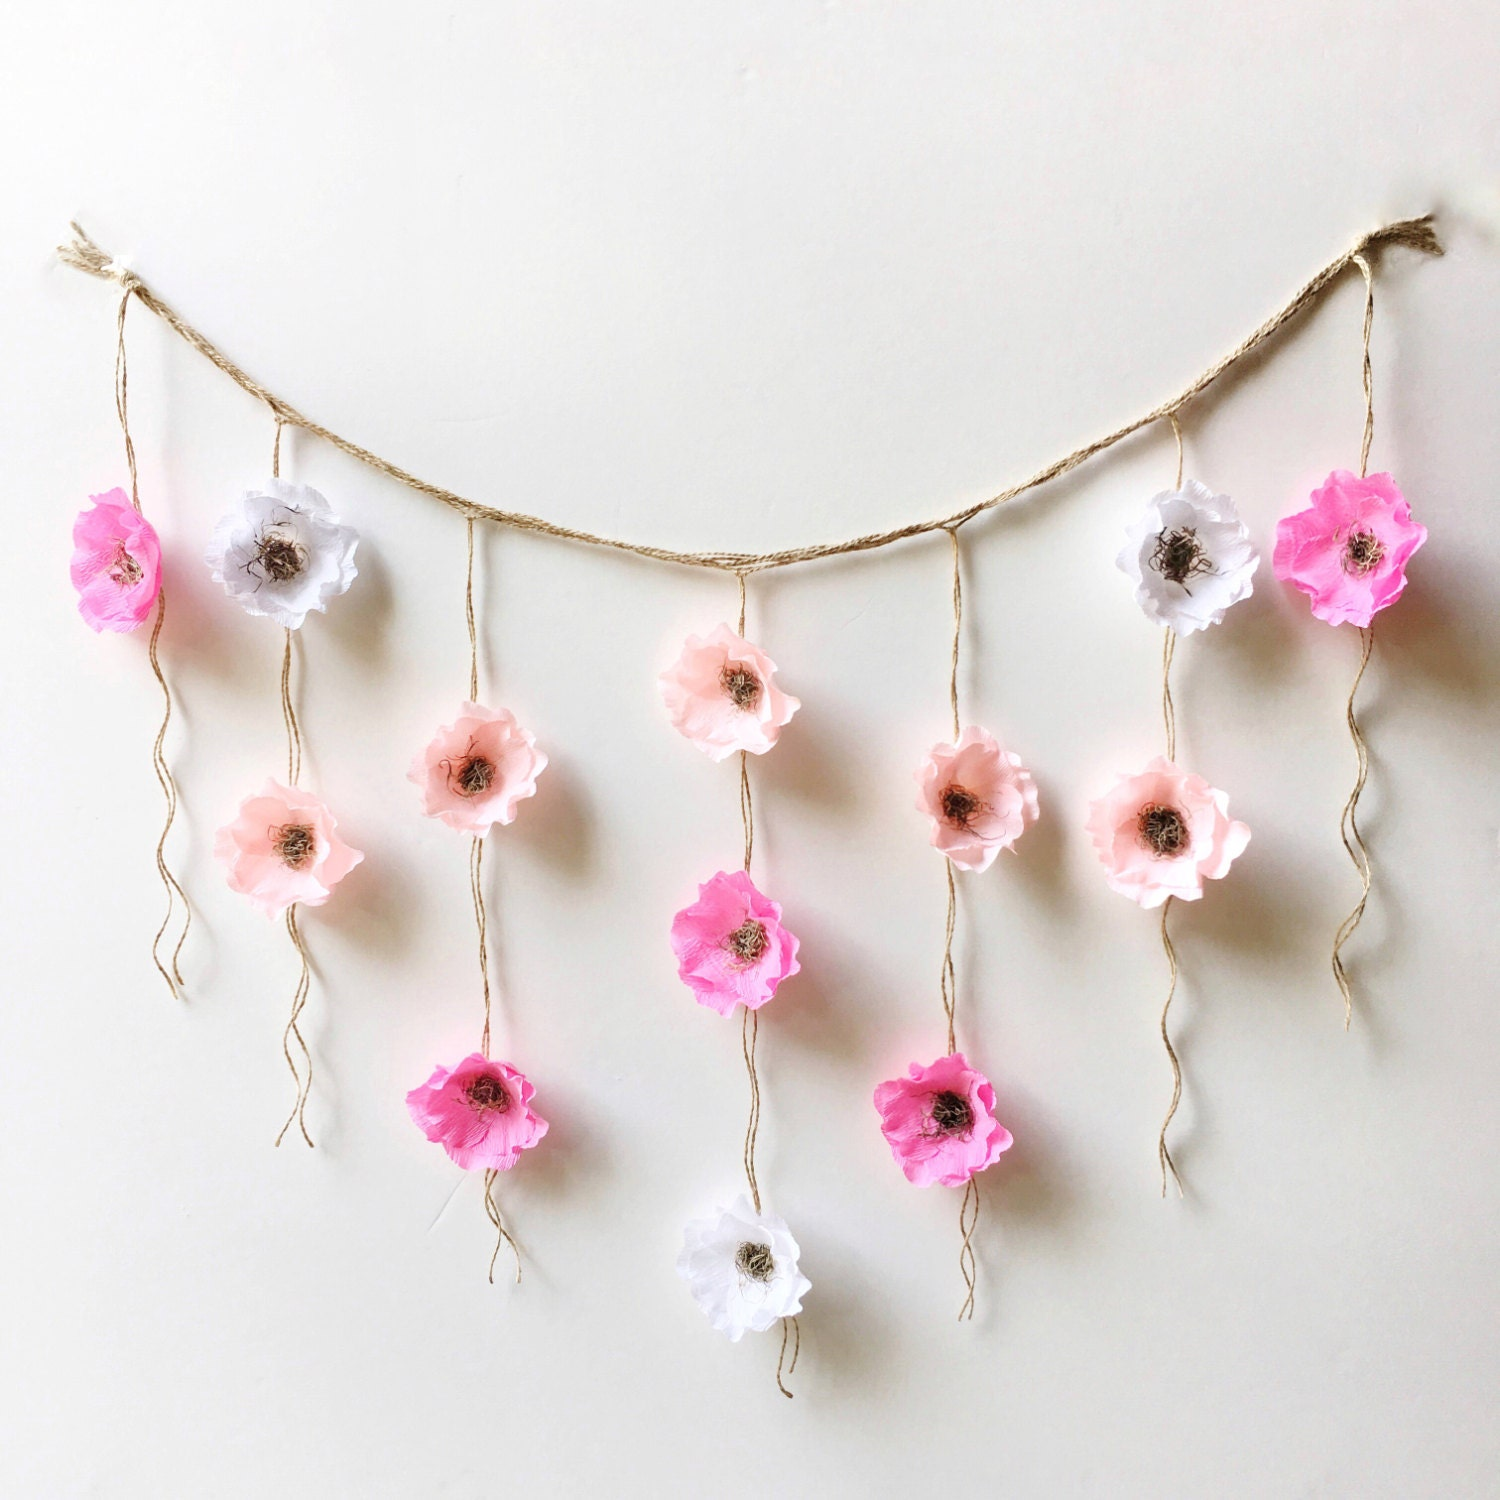 Boho paper flower wall hanging nursery wall decor dorm wall zoom mightylinksfo Image collections